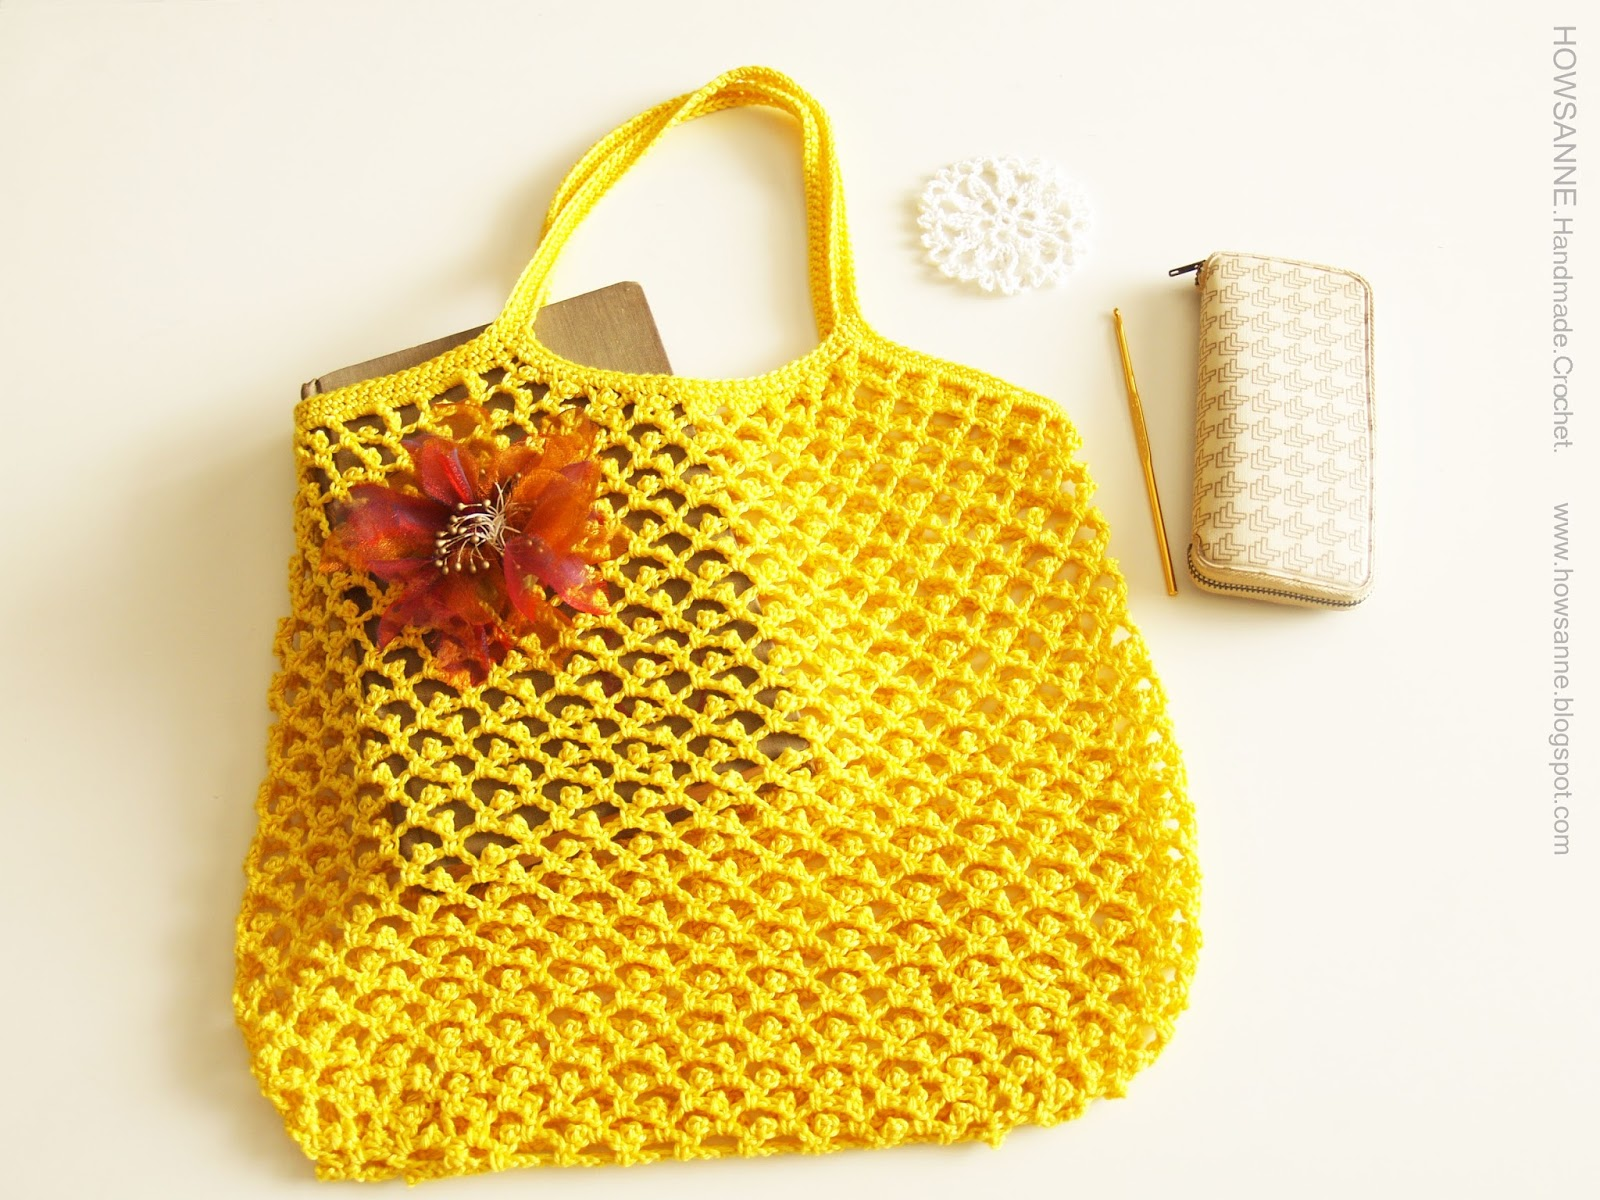 Easy Crochet Mesh Bag Pattern : Howsanne Handmade Crochet : Crochet Shopping Mesh Bag and ...